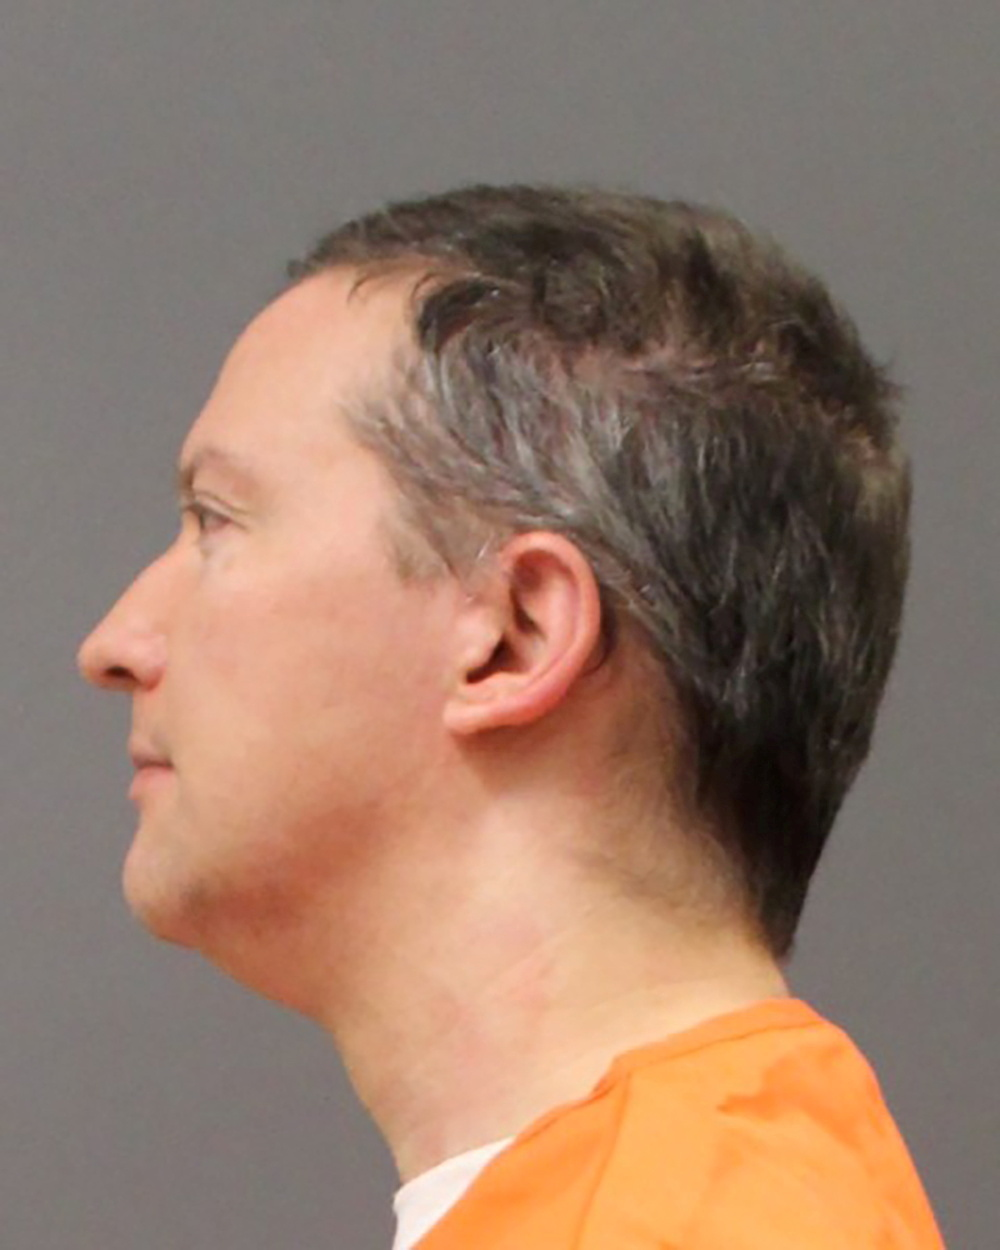 Former Minneapolis Police Officer Derek Chauvin is shown in this police booking photo after a jury found him guilty on all counts in his trial for second-degree murder, third-degree murder and second-degree manslaughter in the death of George Floyd in Minneapolis, Minnesota, U.S. April 20, 2021. Minnesota Department of Corrections/Handout via REUTERS